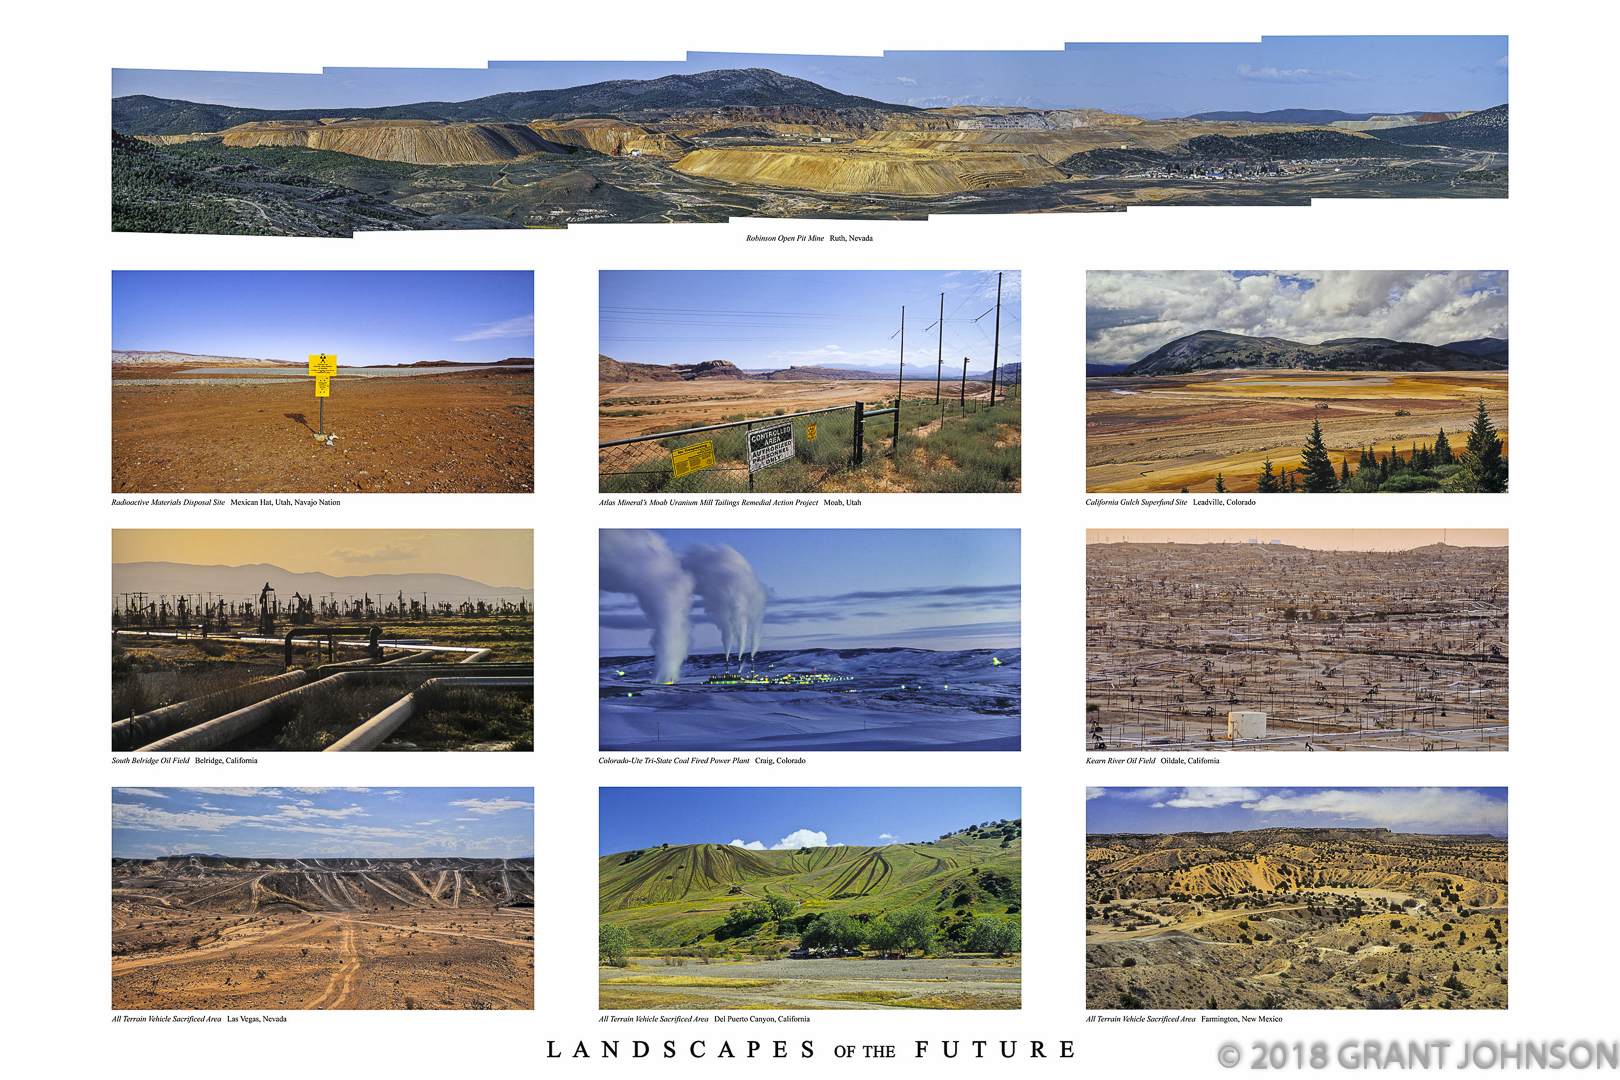 When viewed from above, it is clear that the space we've allotted to the natural world is shrinking at an alarming rate. Urban sprawl, infrastructure, destructive entertainment and extractive industries dominate ever more of our landscape as our consumptive appetites increase because there are, simply, more of us. Mining, drilling and logging are some of the most destructive operations because antiquated laws have enabled some companies to despoil the environment and leave their waste products unabated. As the local population weighs the jobs created against the toxic legacy of these operations, the appeal is eventually made for clean up which should have been part of the cost of extraction but is often paid by the public. This rewards destructive practices and sends the message that it's okay to do the wrong thing because the public will bail you out.